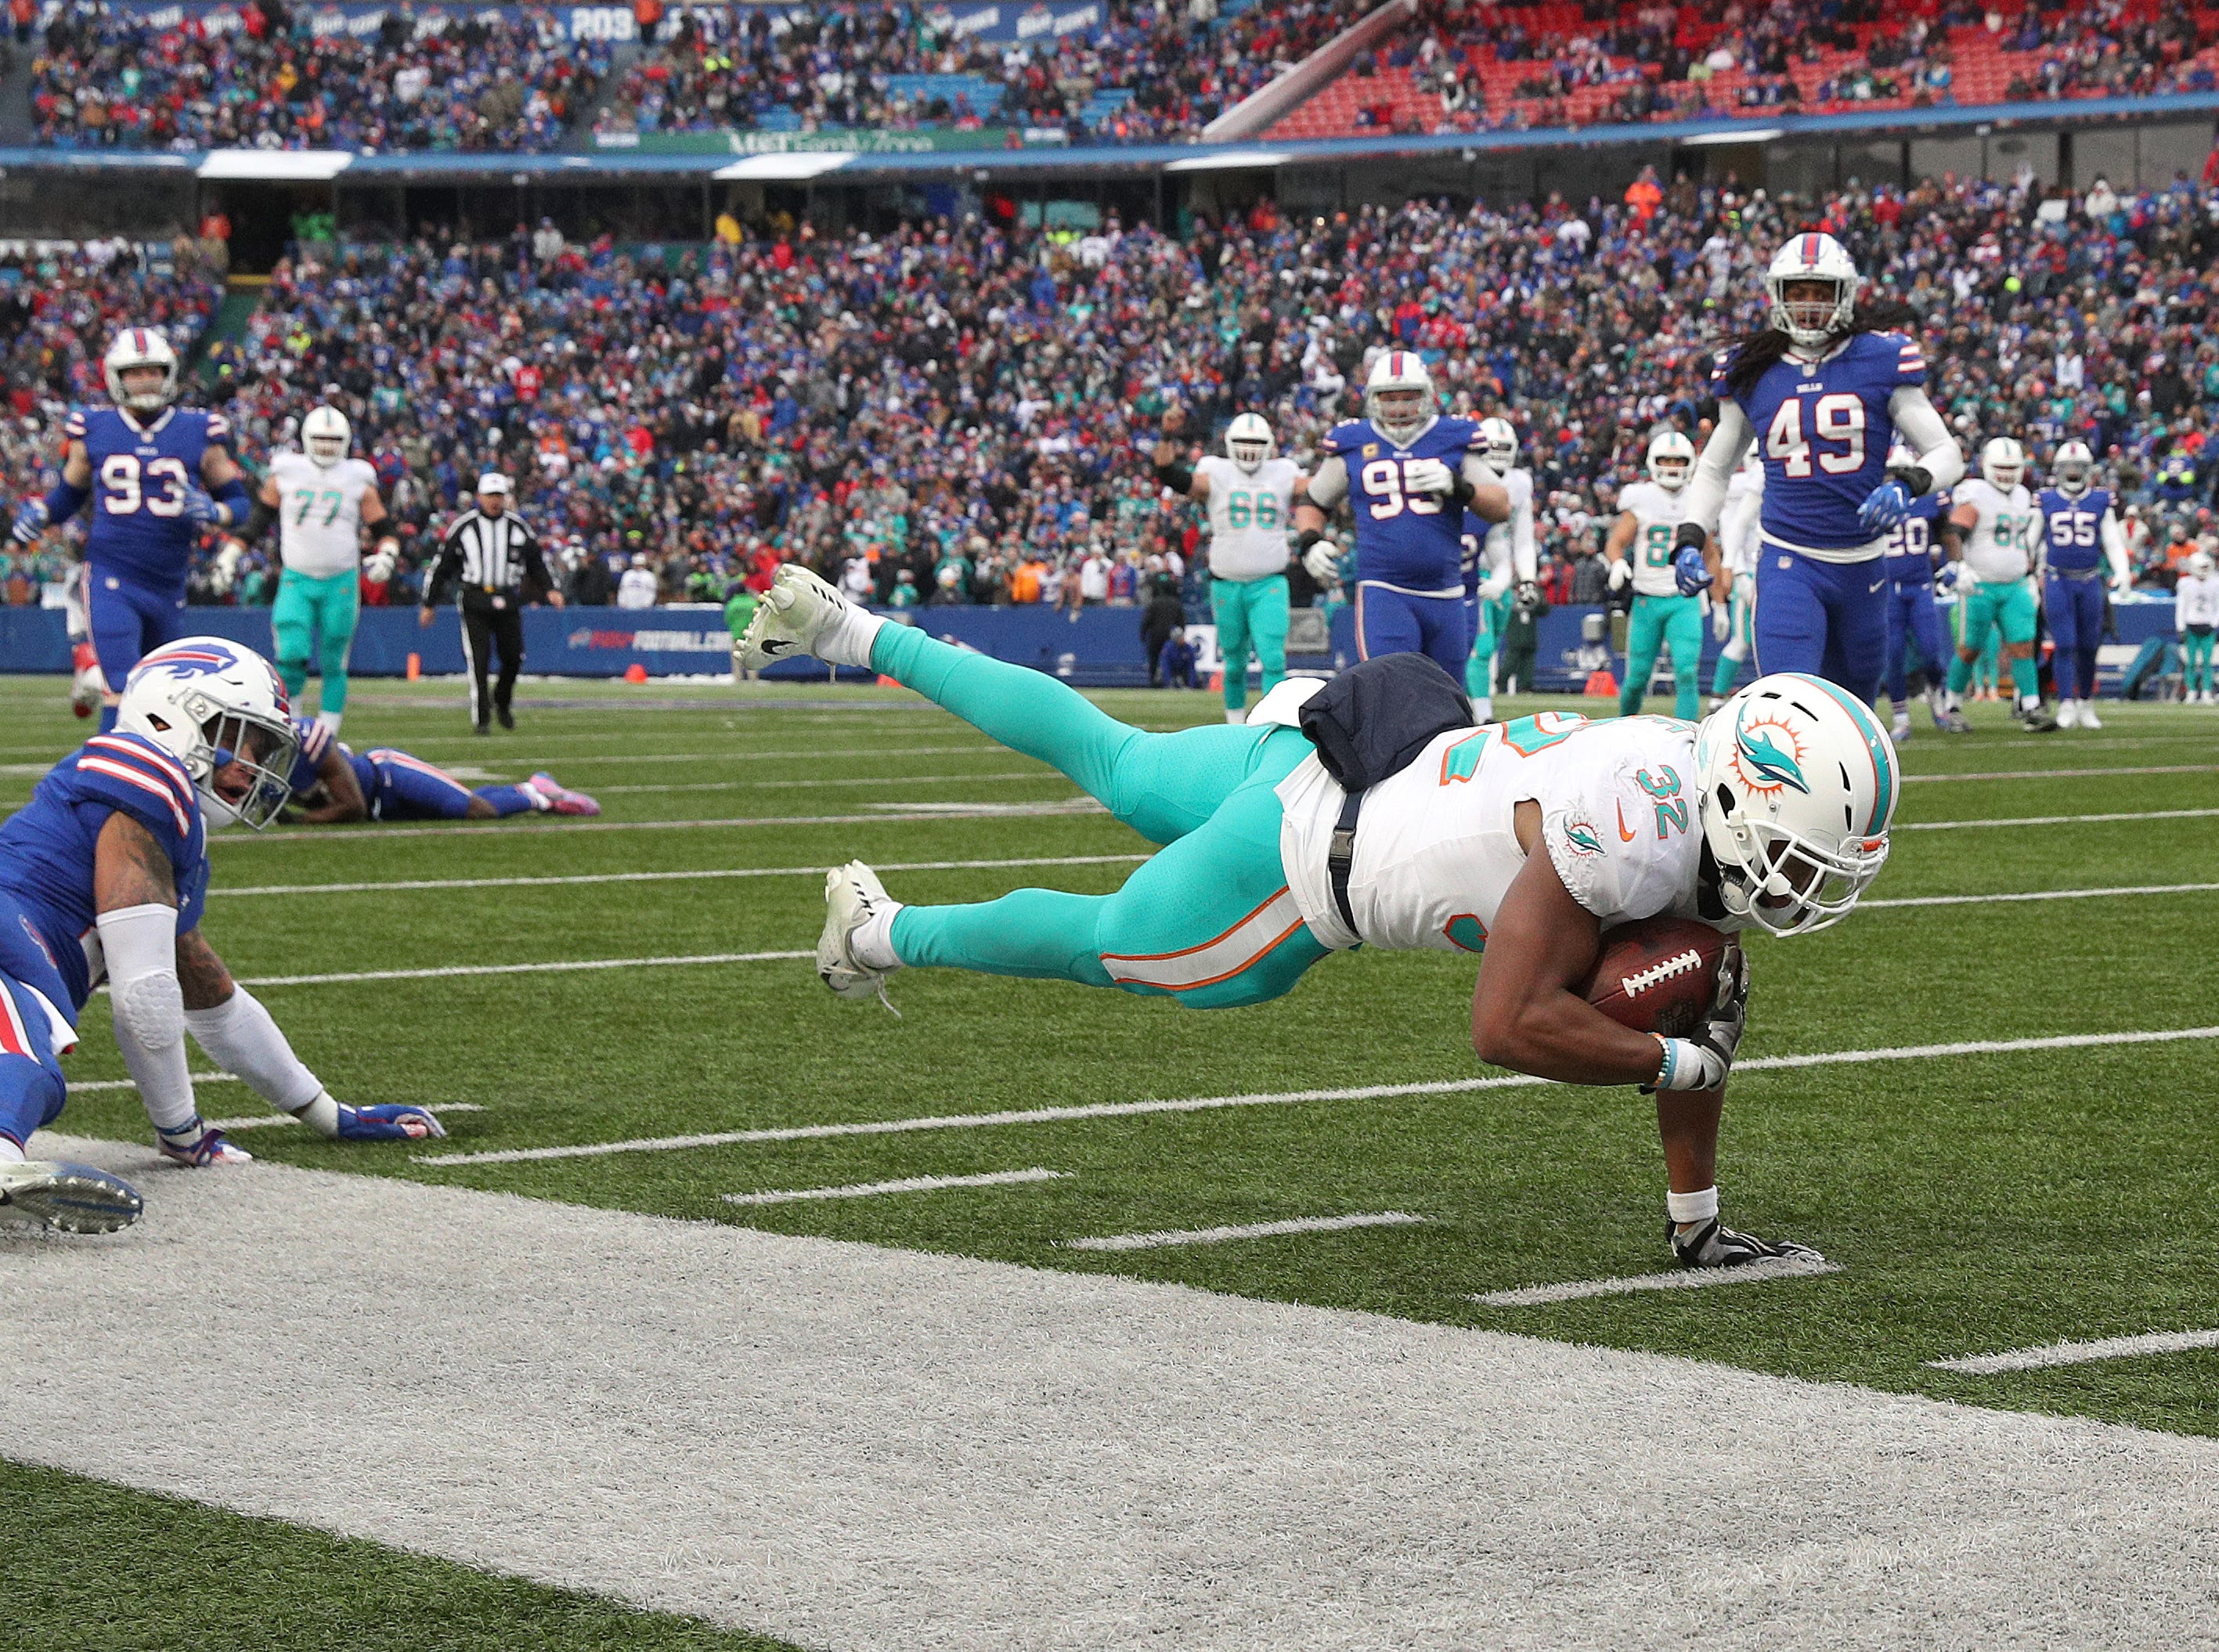 Dolphins Kenyan Drake is short of the end zone on this catch.